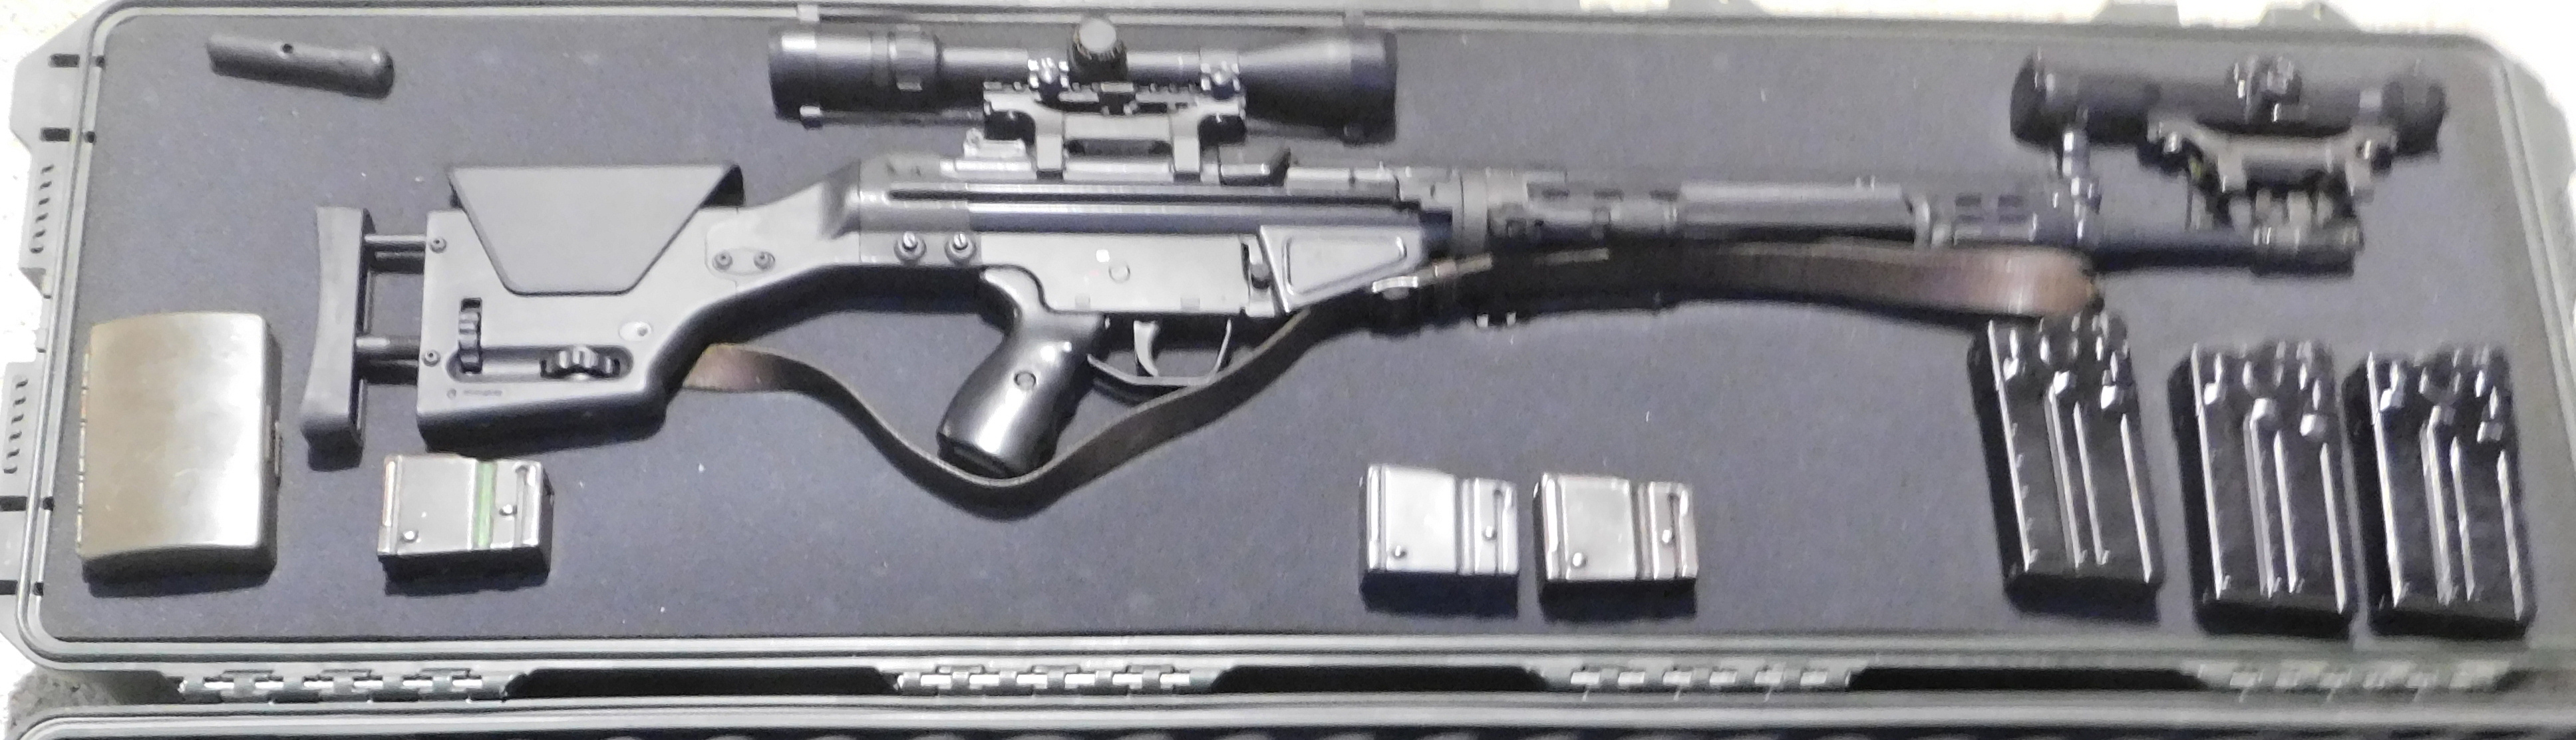 Need scope advice for a HK91-msg90.jpg